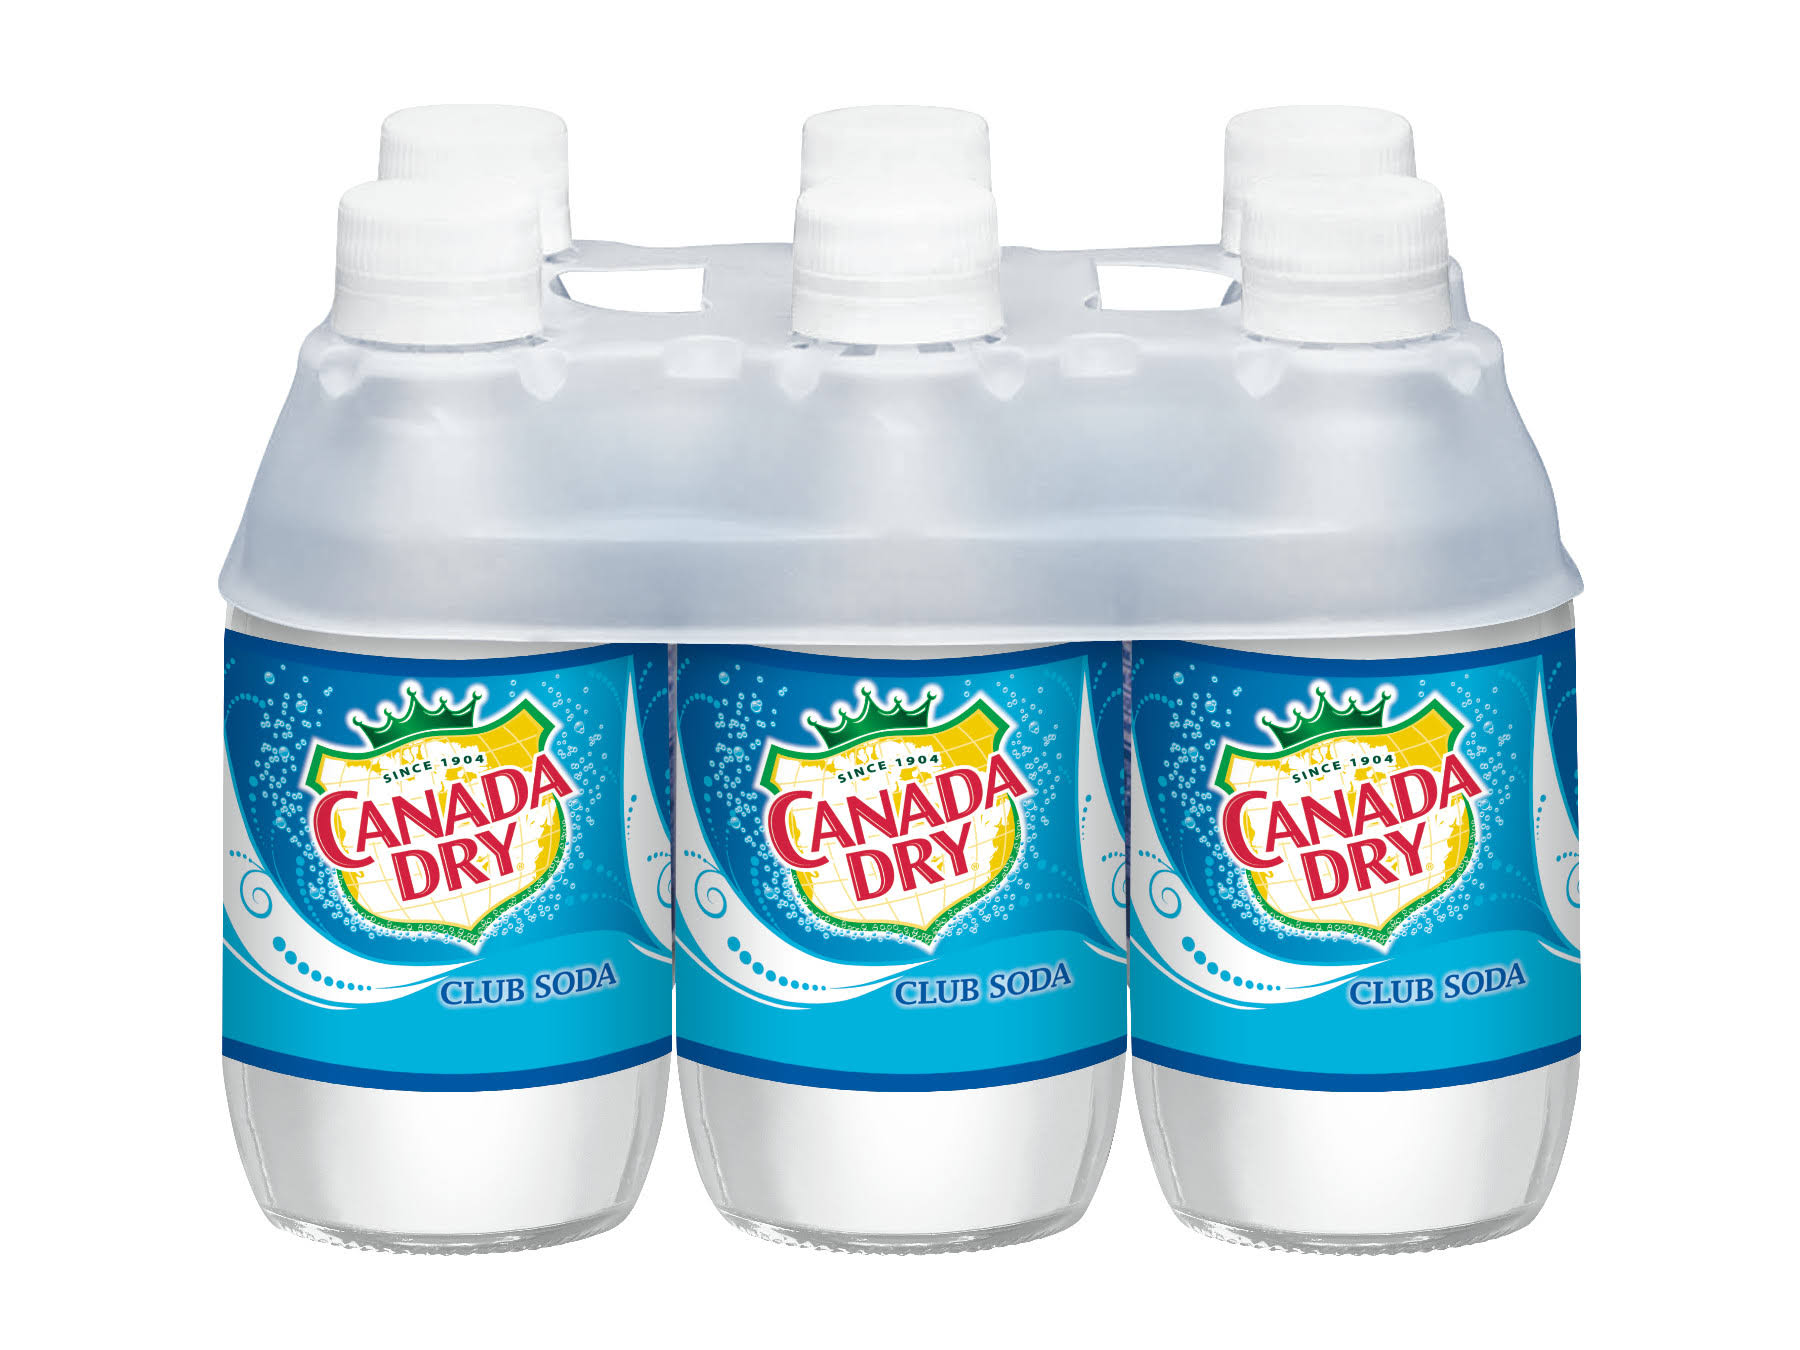 Canada Dry Club Soda, 6-Pack - 6 pack, 10 fl oz bottle